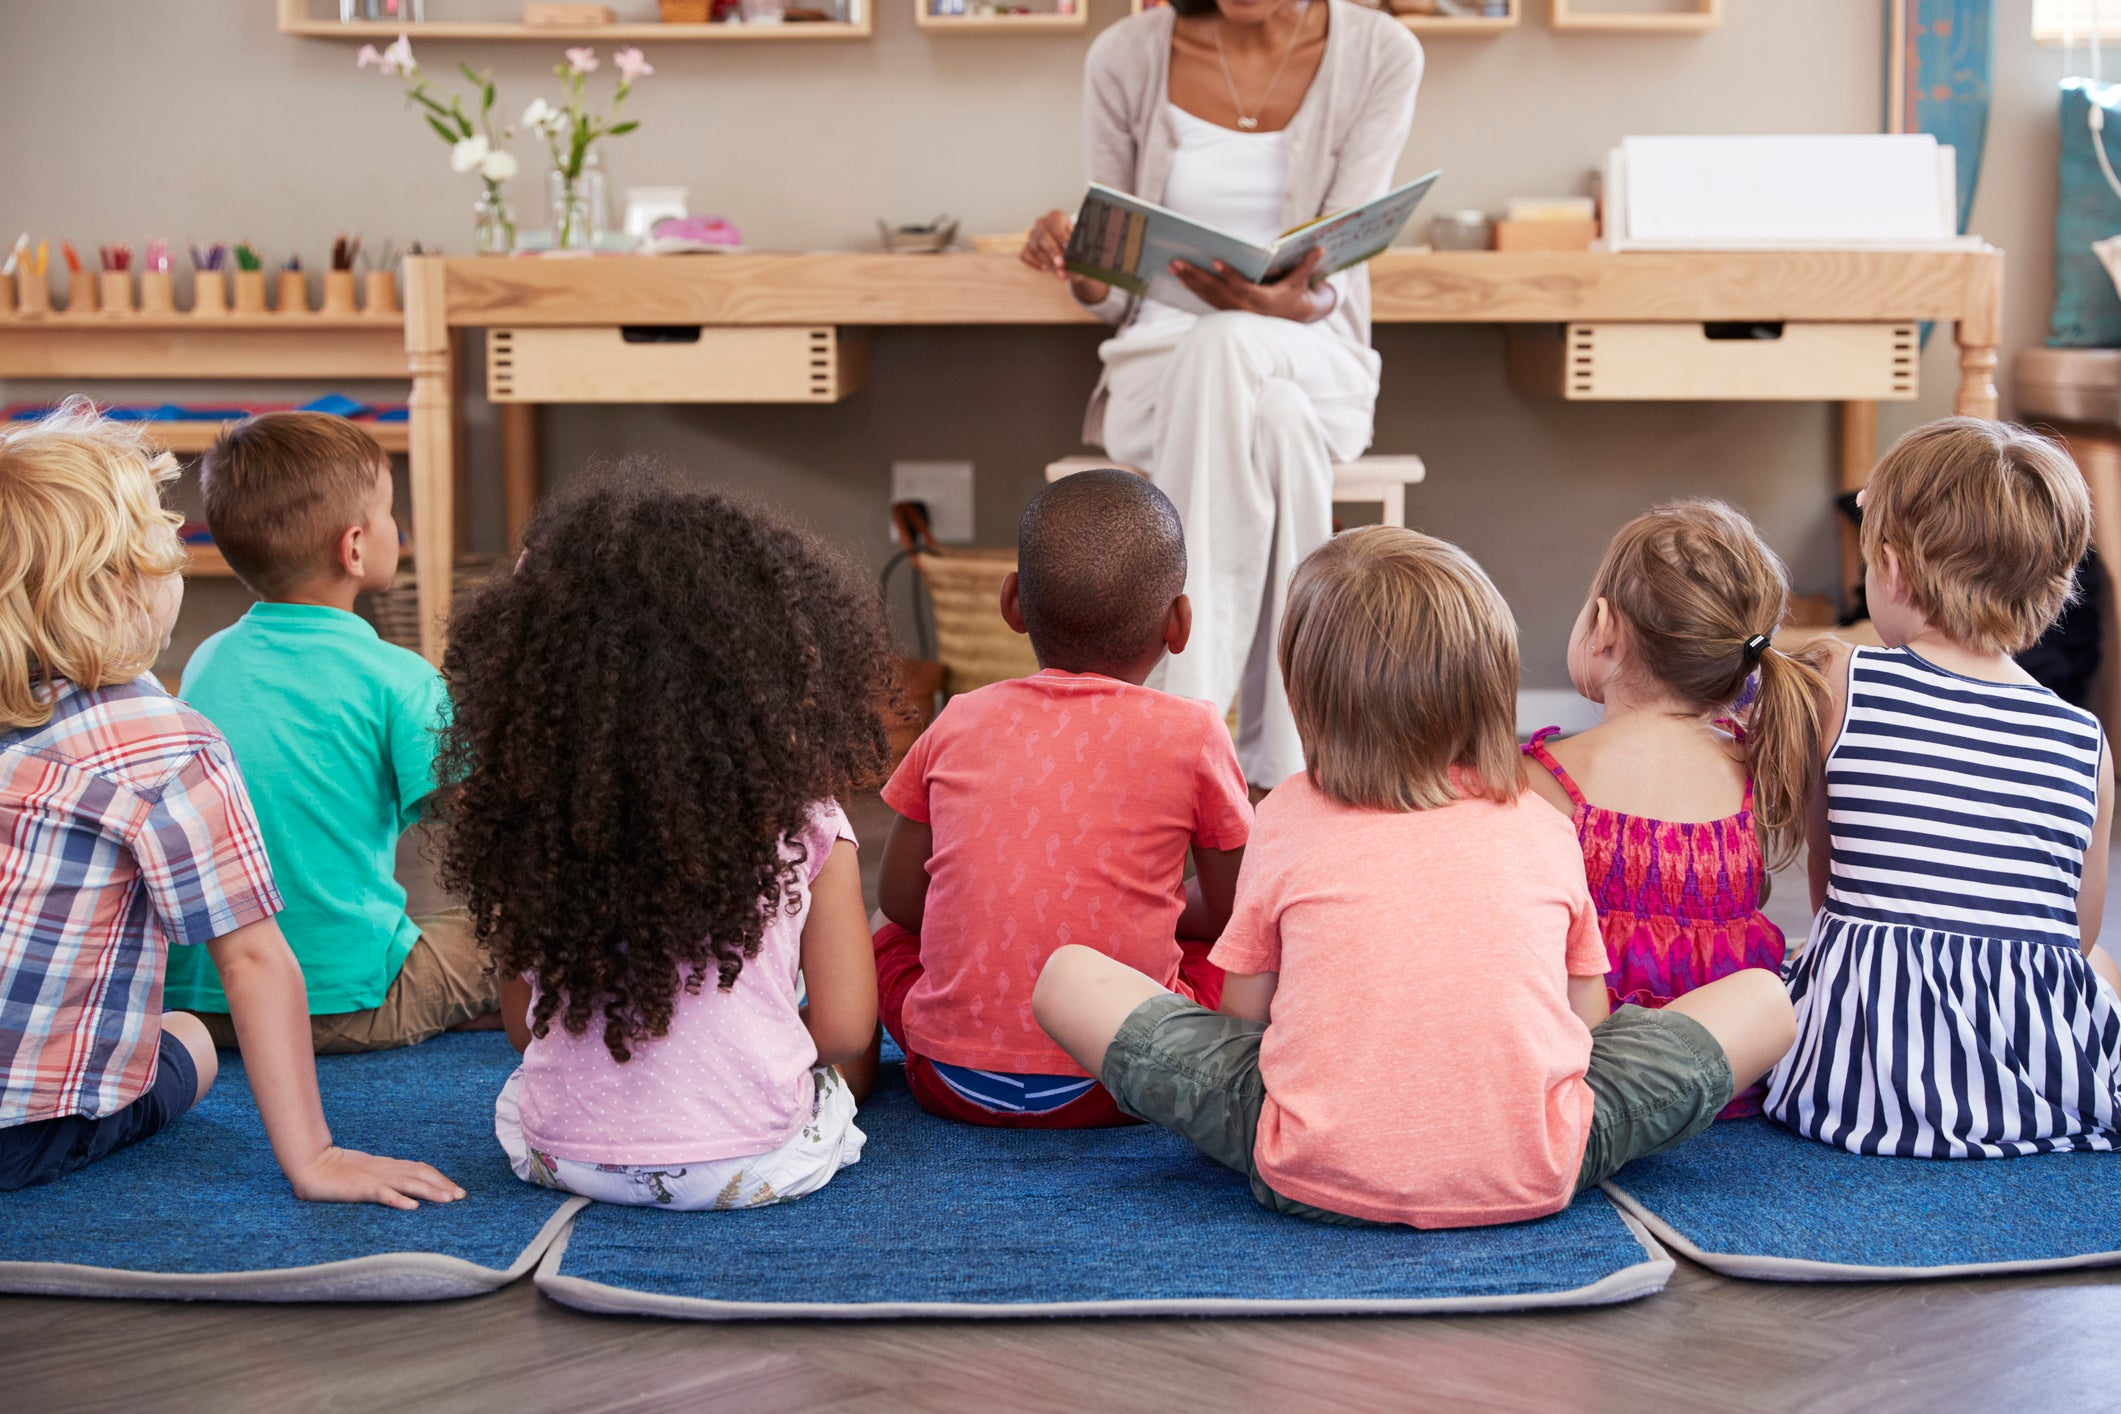 A group of children sitting on mats in a child care center listening to a story.